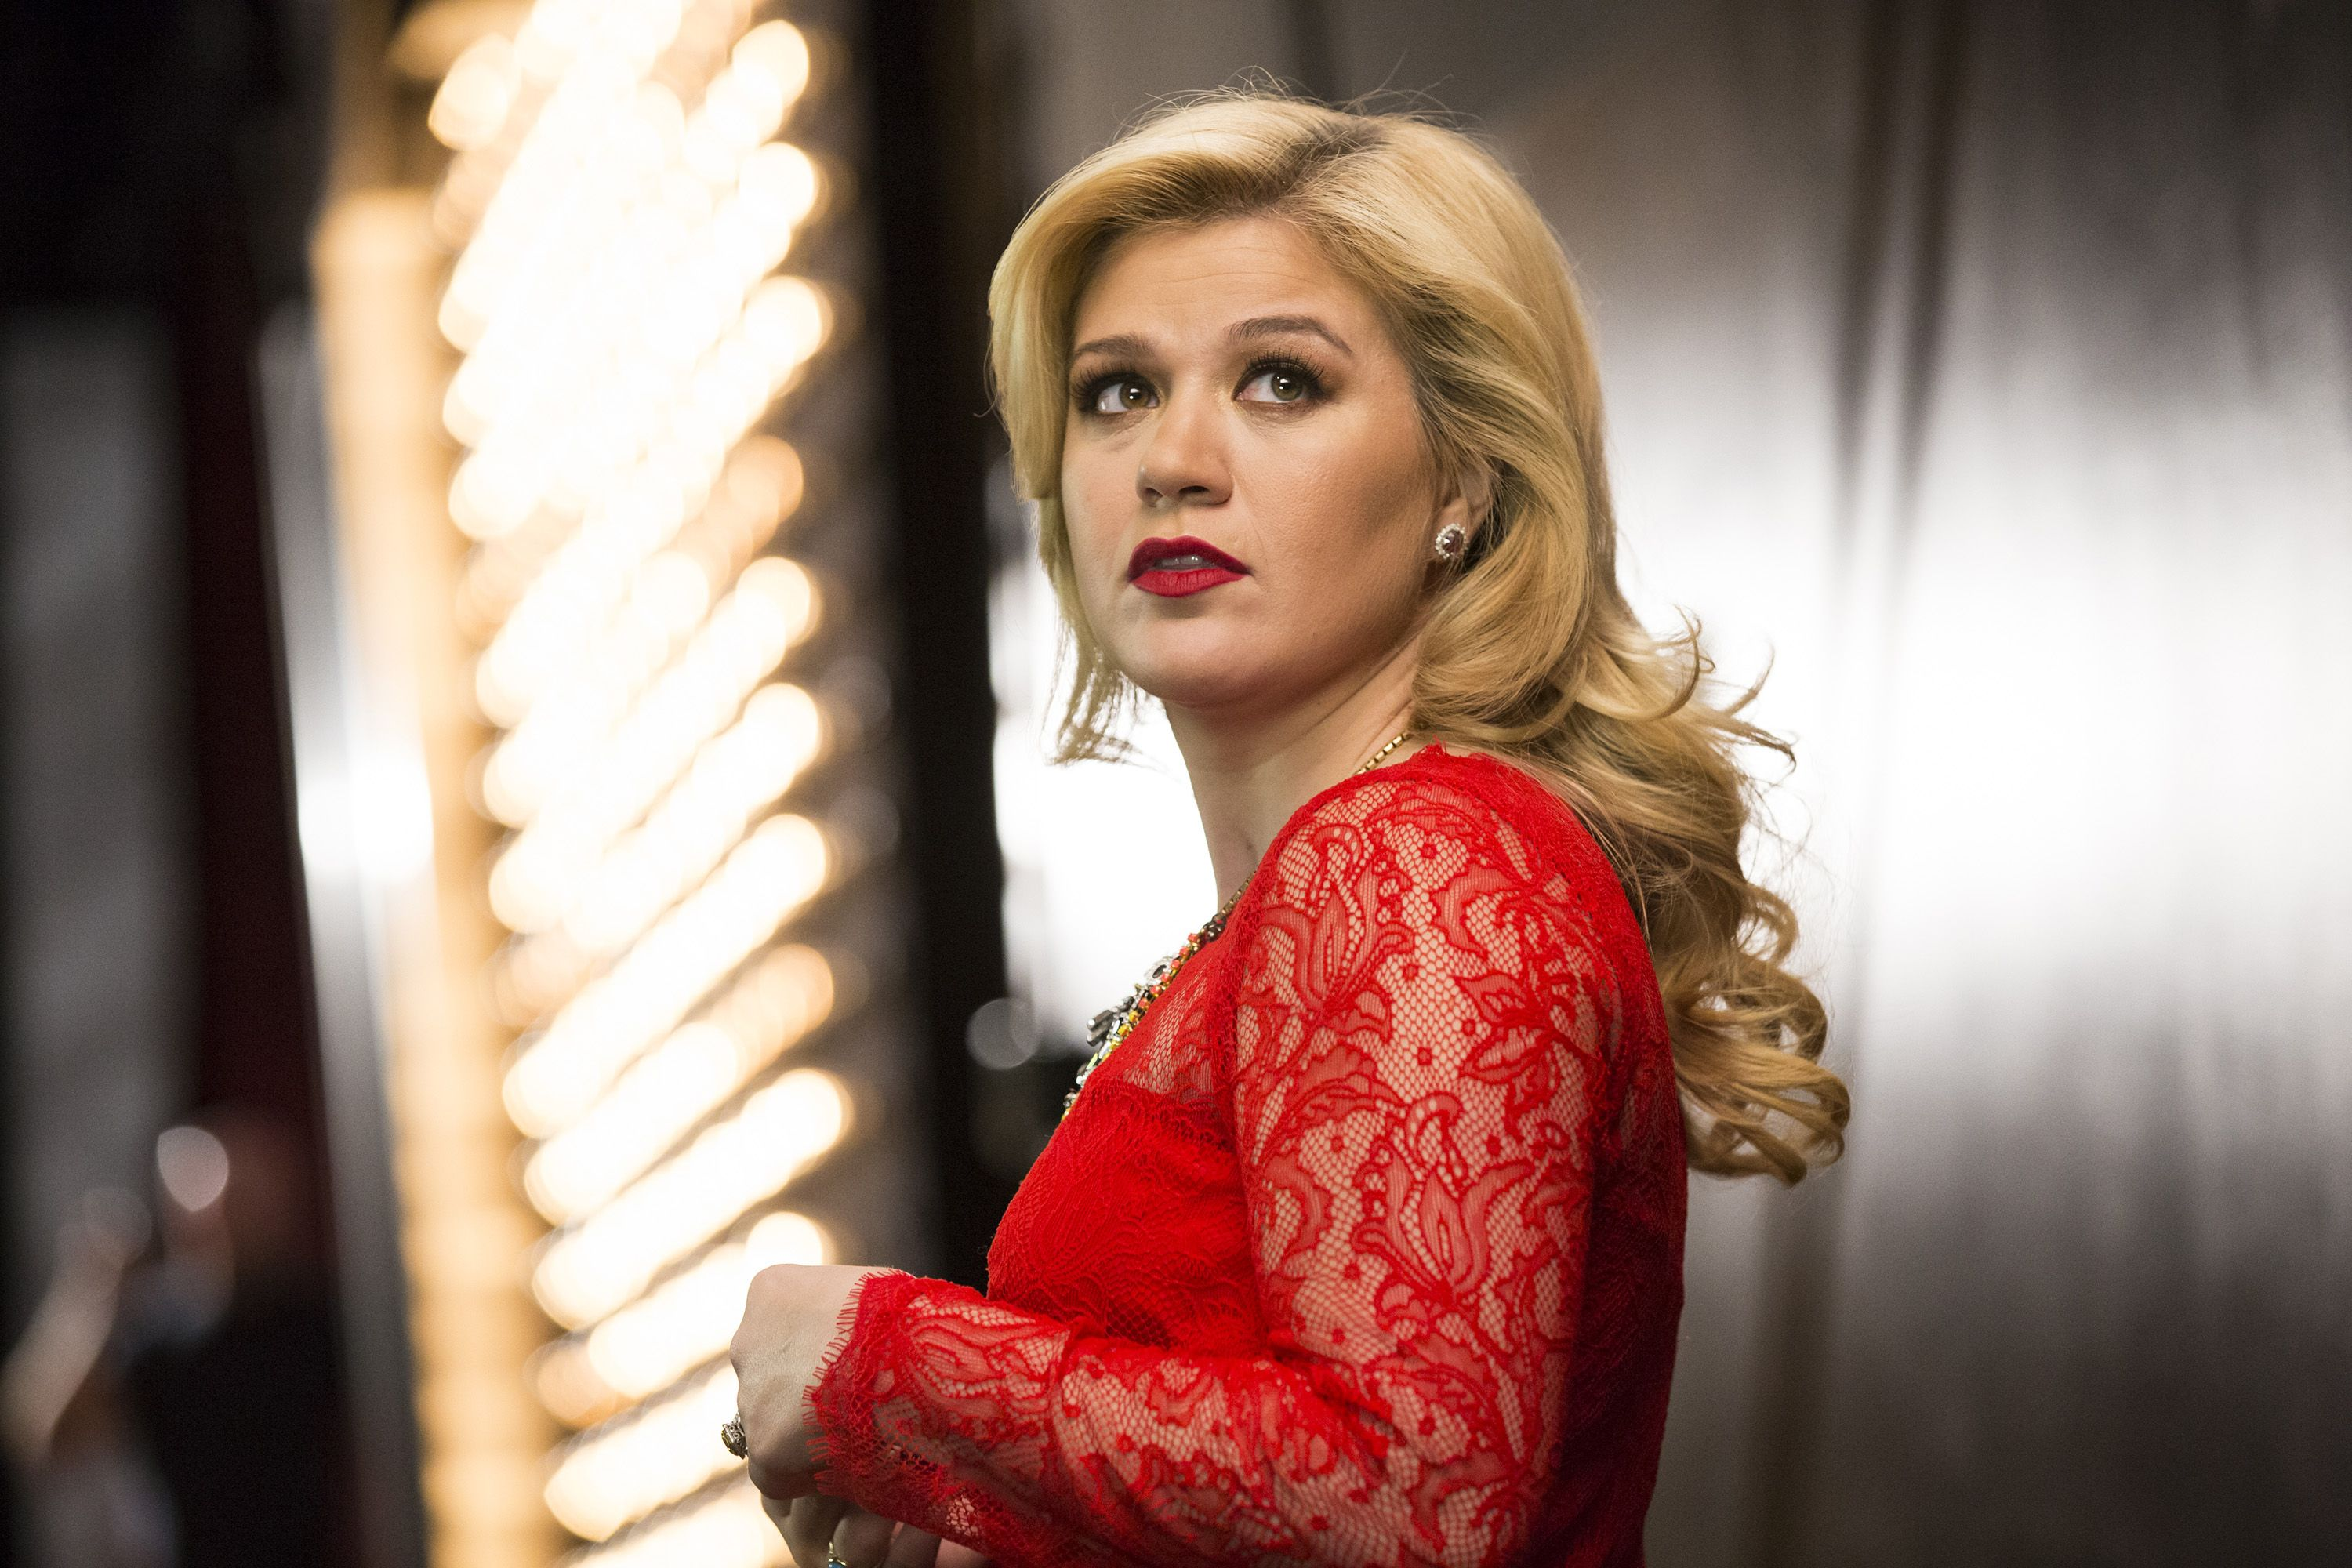 Kelly Clarkson Just Shut Down a Troll Who Attacked One of Her Fans